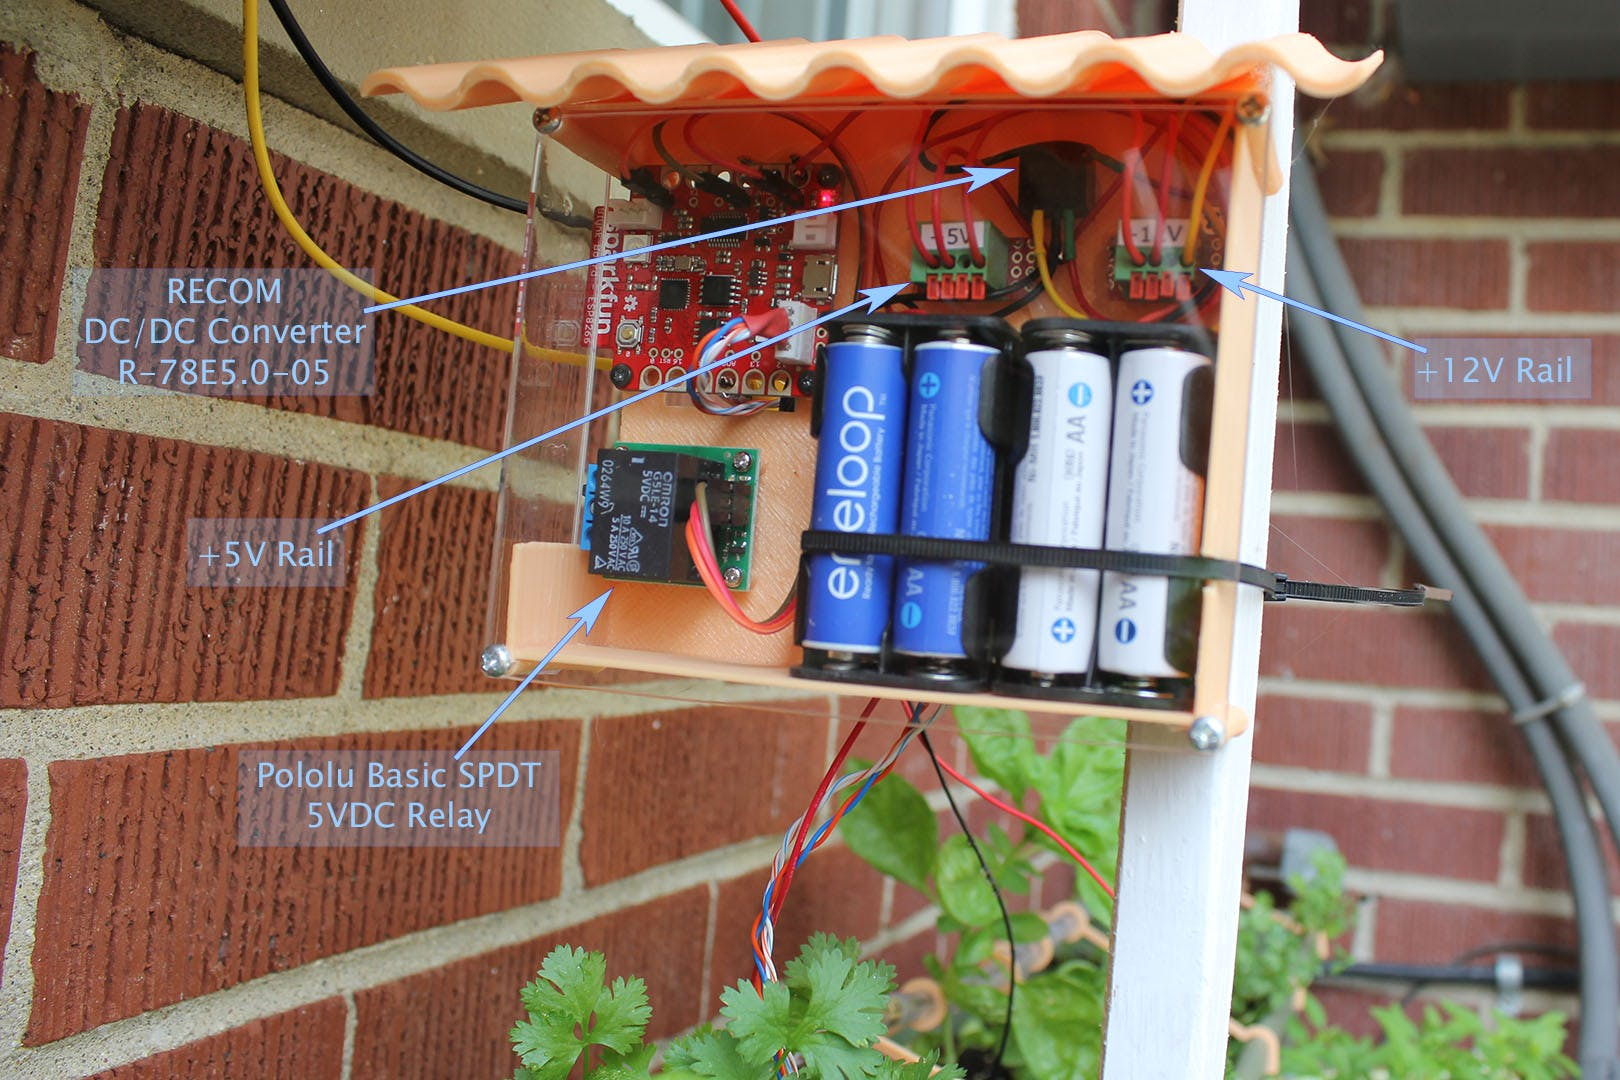 Smart Modular Watering System assembled